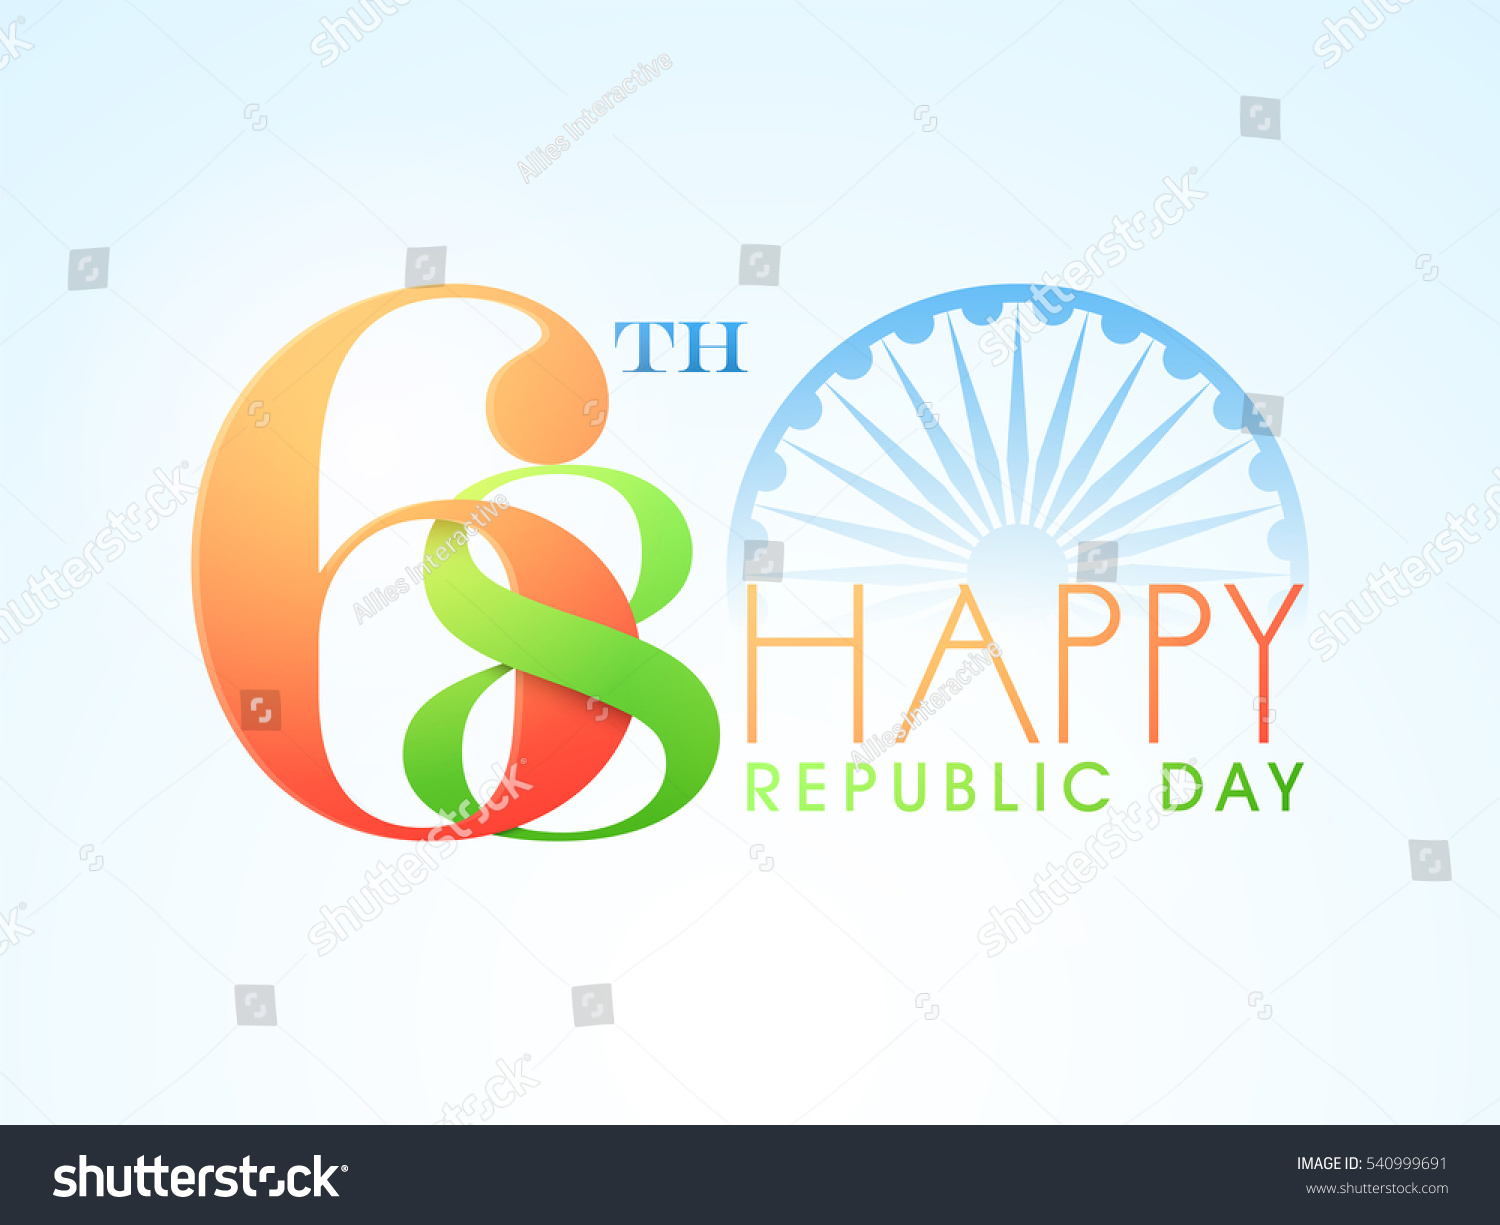 Colors website ashoka - National Flag Colours Text 68th With Ashoka Wheel For Indian Republic Day Celebration